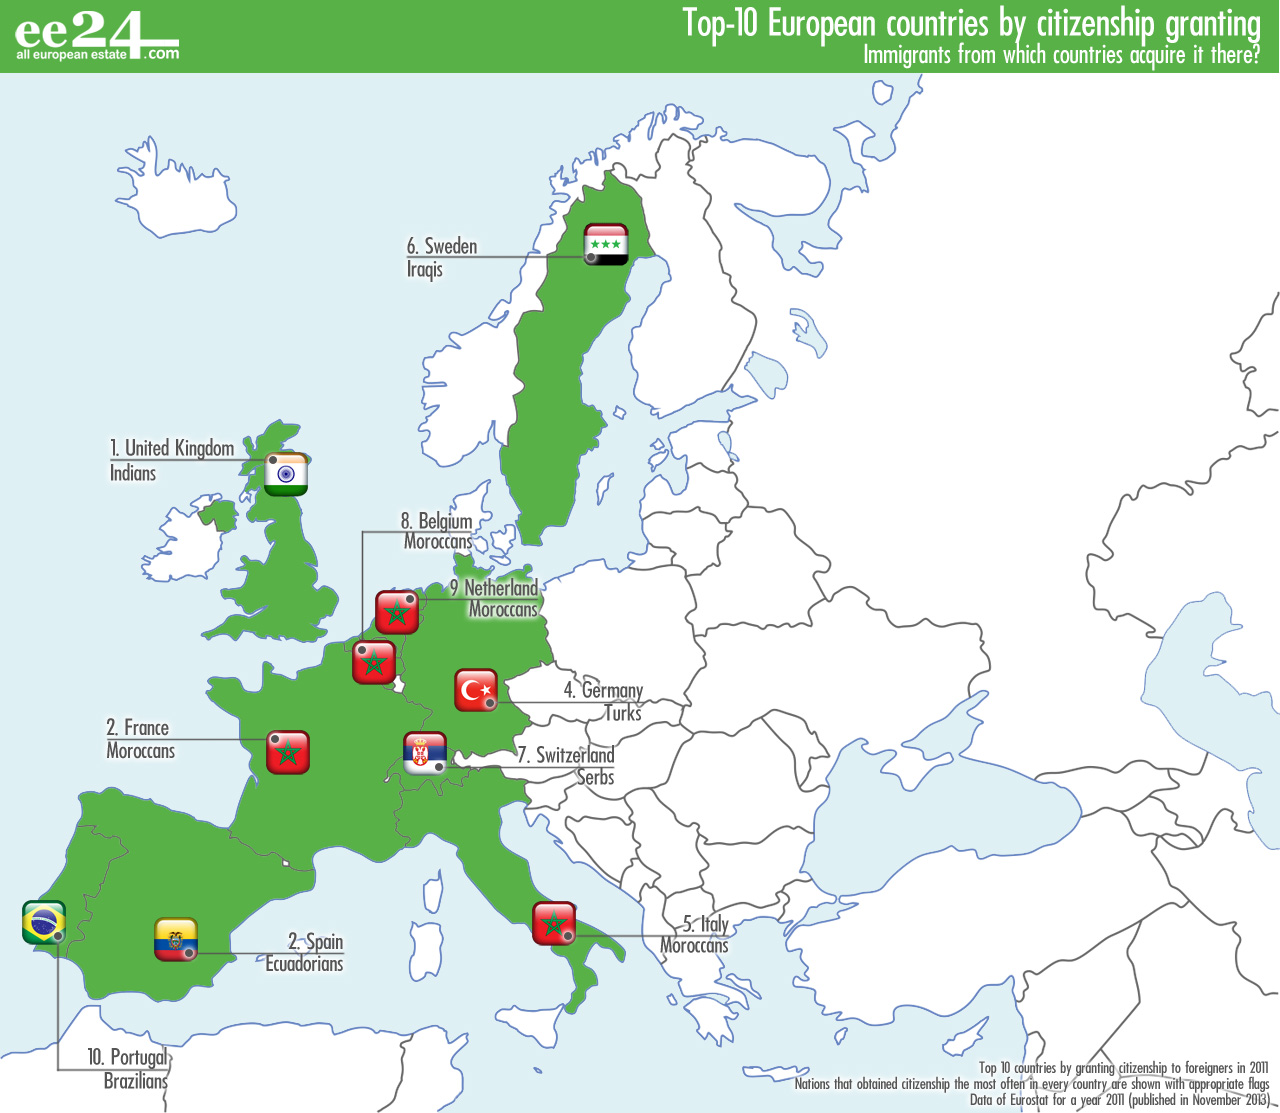 Countries that actively gave EU citizenship in 2012 | Photo 1 | ee24